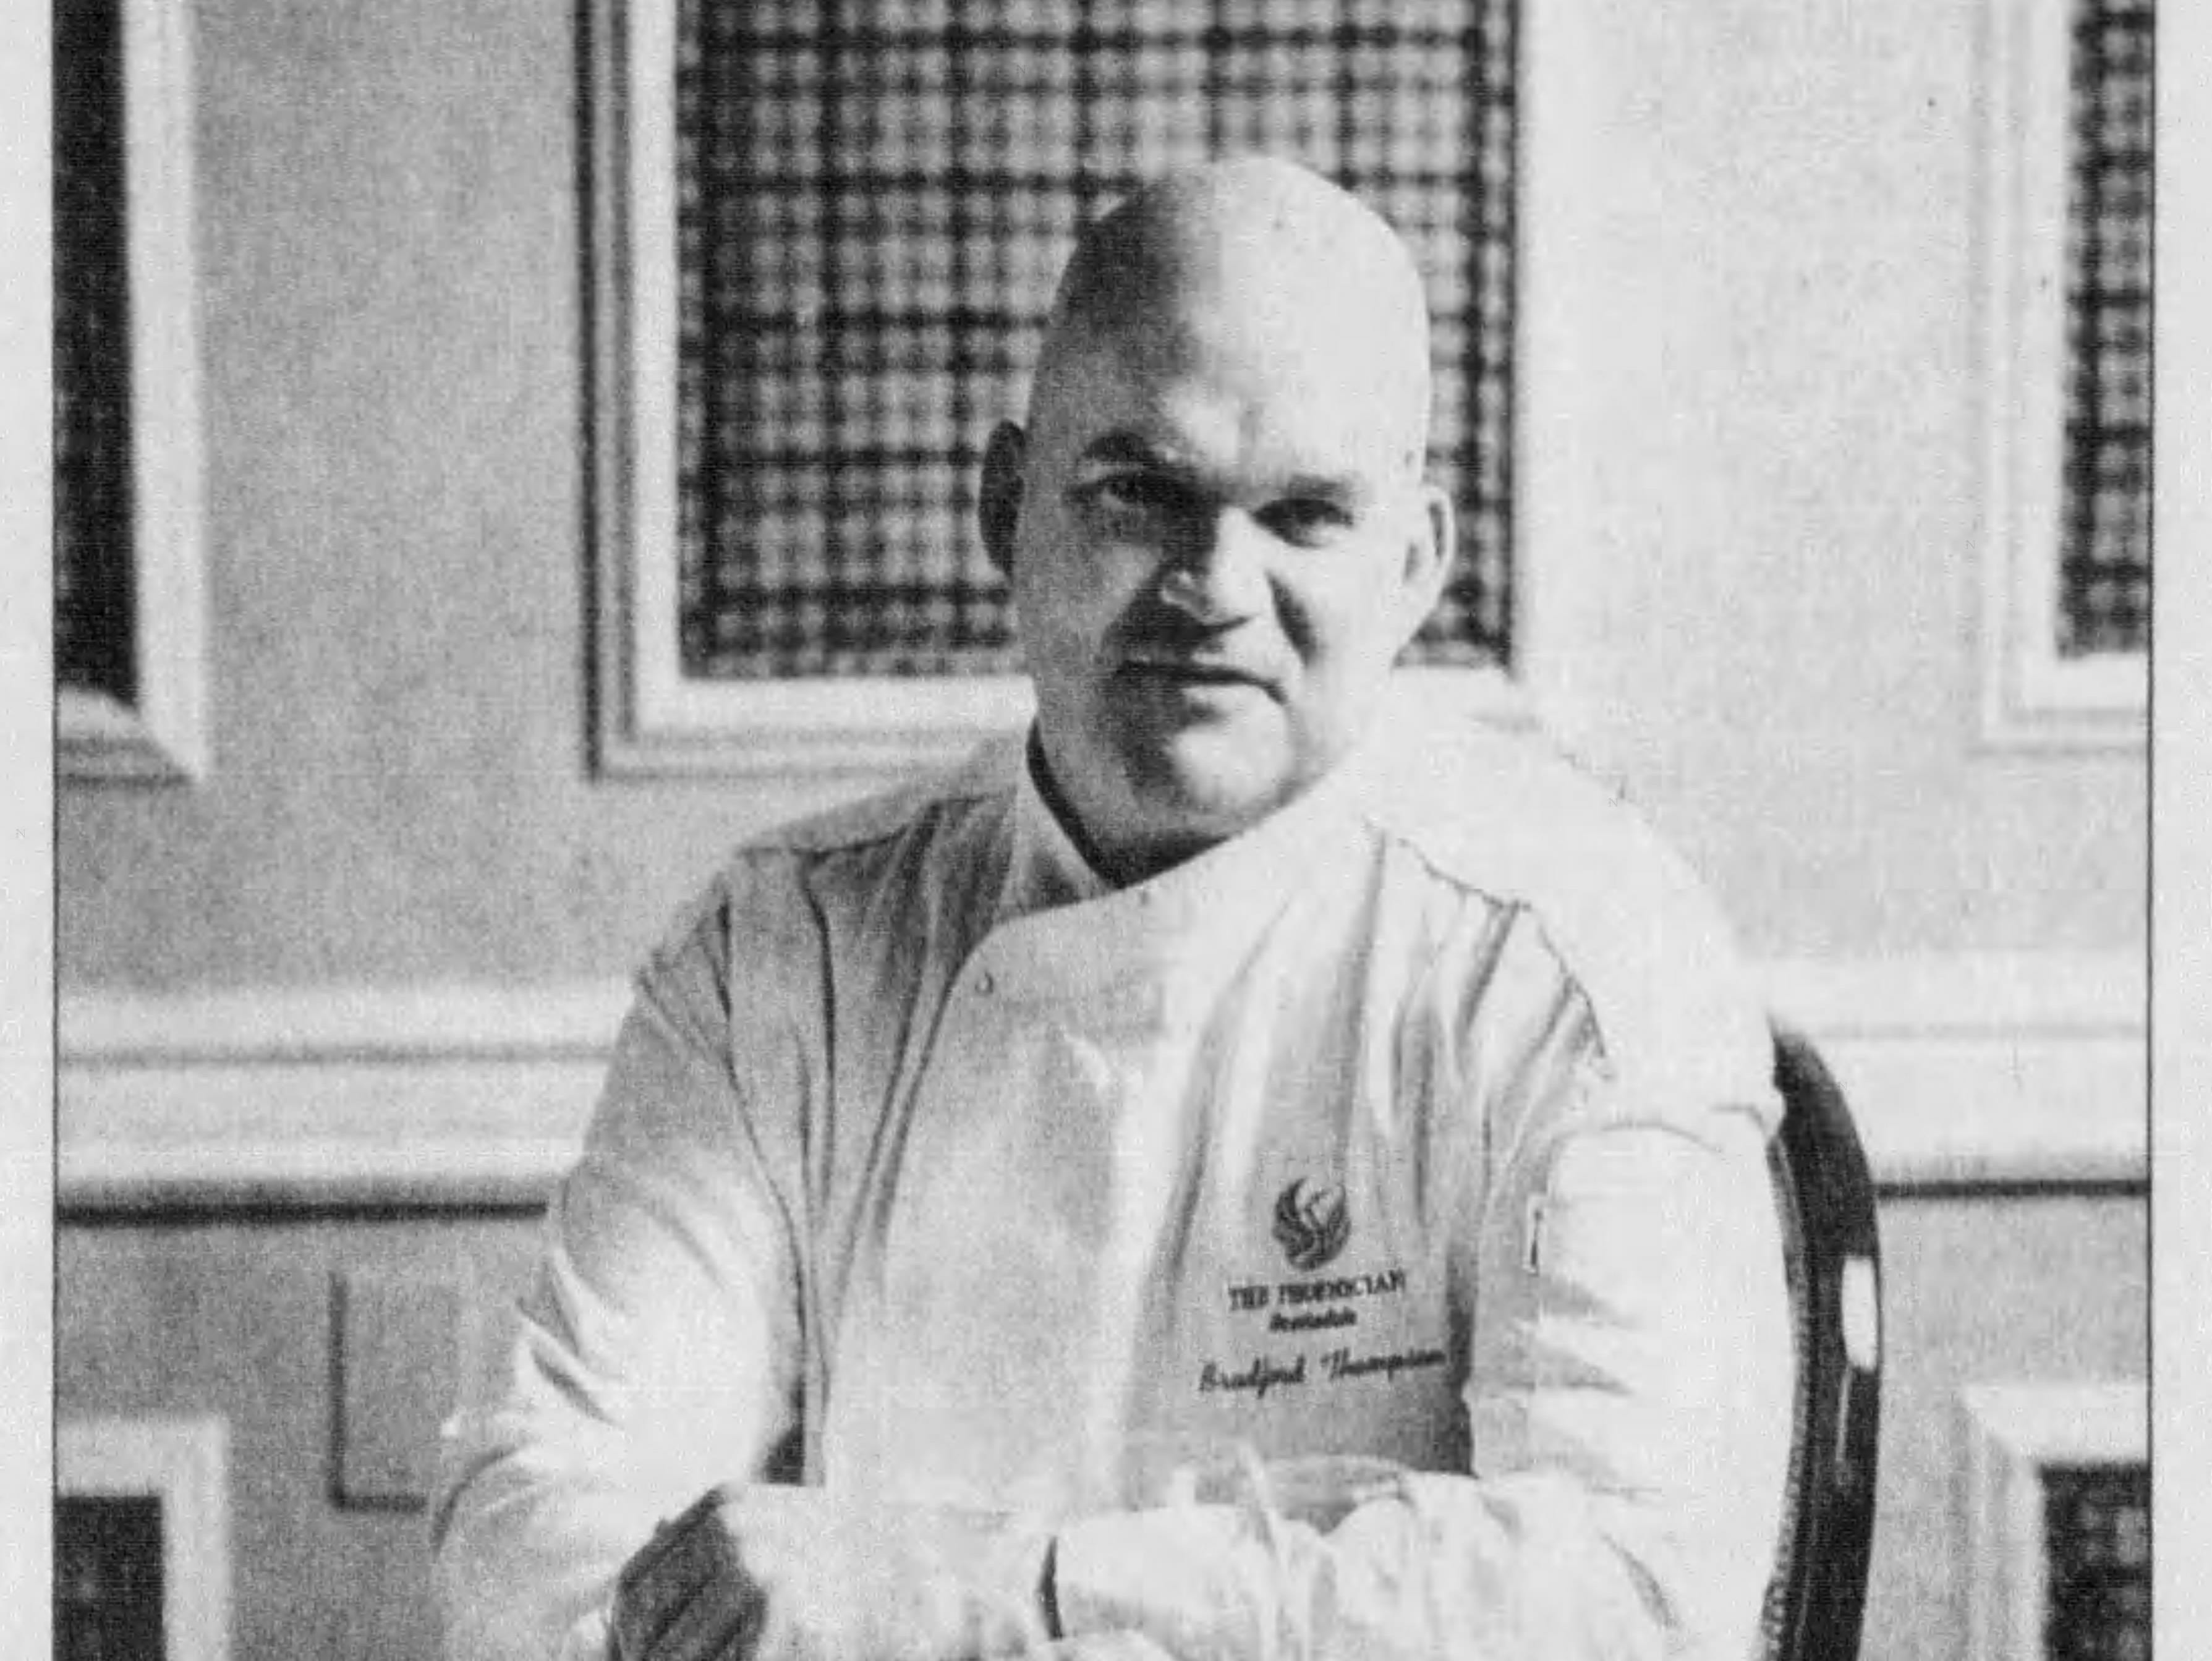 Bradford Thompson won the James Beard Award for Best Chef: Southwest in 2006 for his work at Mary Elaine's at The Phoenician.